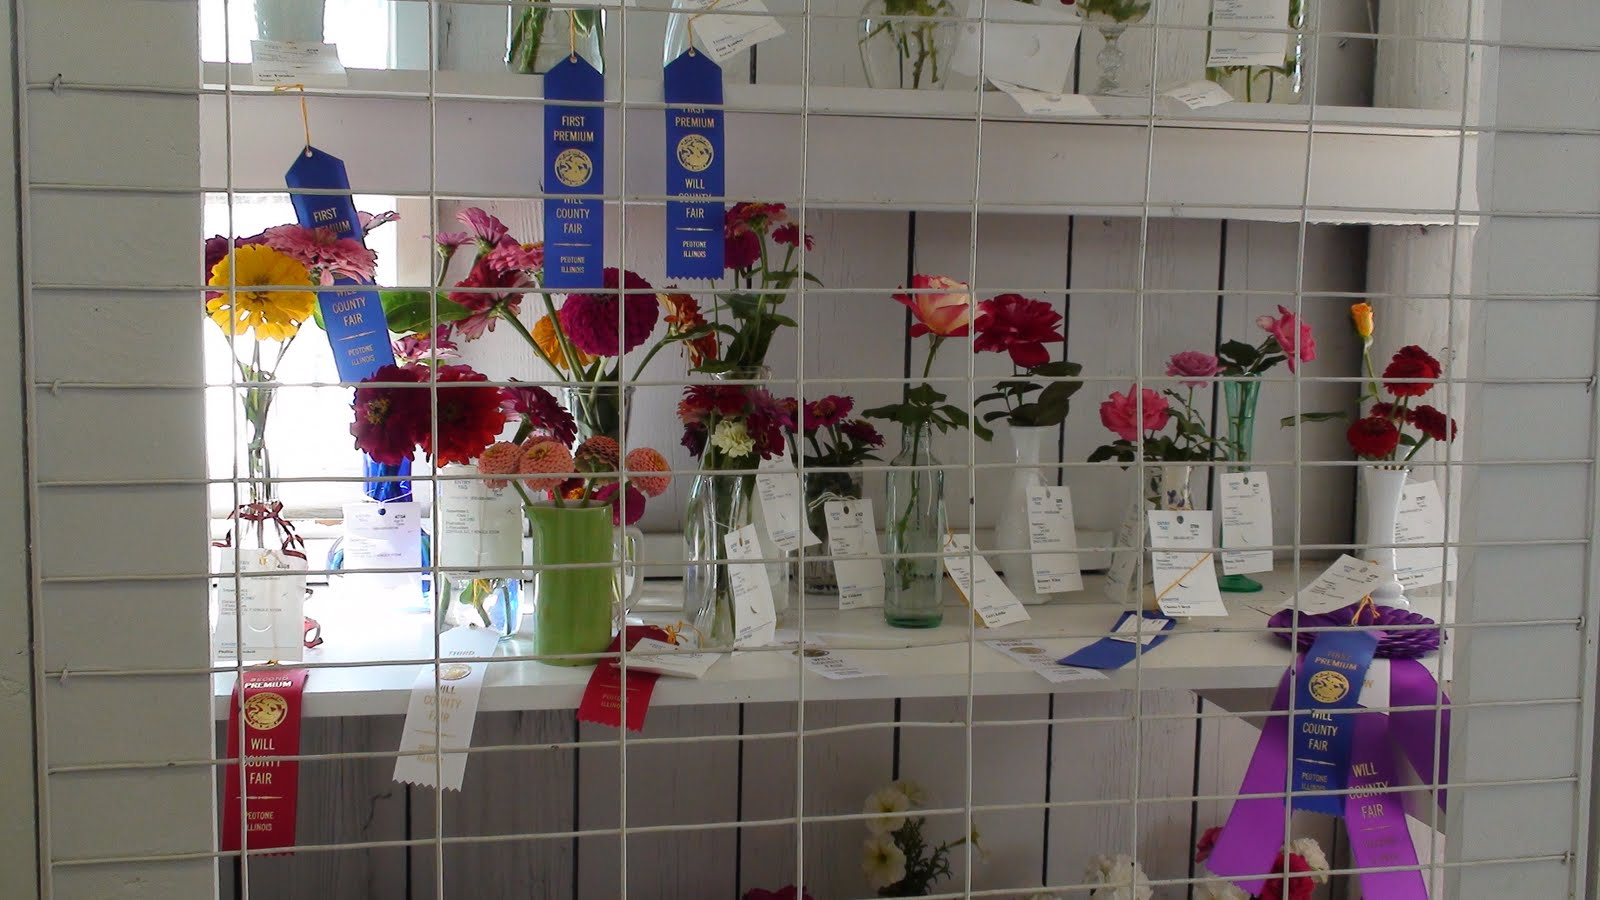 Illinois will county peotone - Floral Exhibits At The Will County Fair In Peotone Illinois